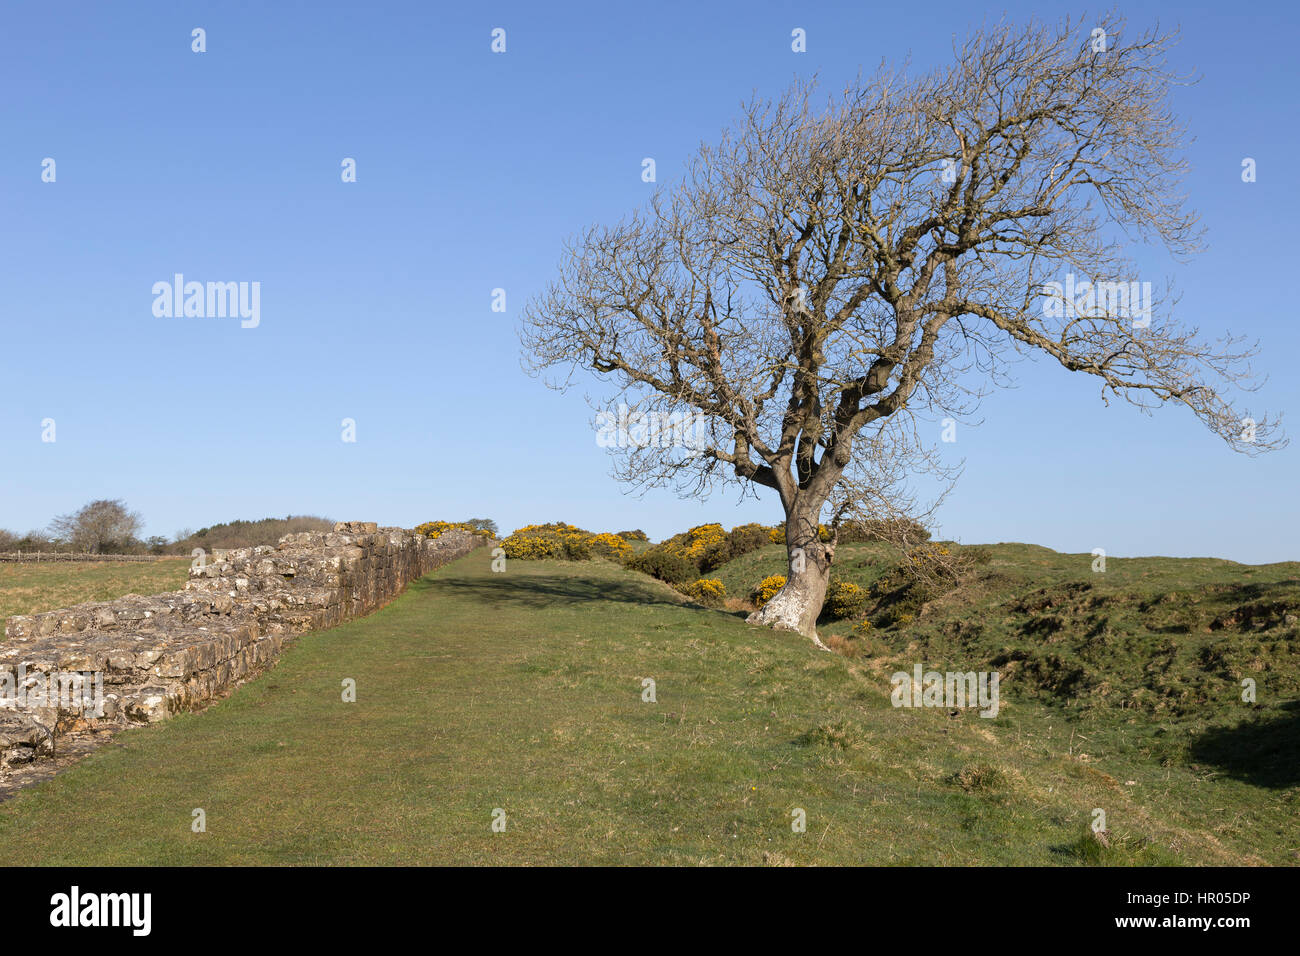 Hadrian's Wall: a stretch of Roman Wall and the accompanying Wall ditch near Black Carts, between Limestone - Stock Image